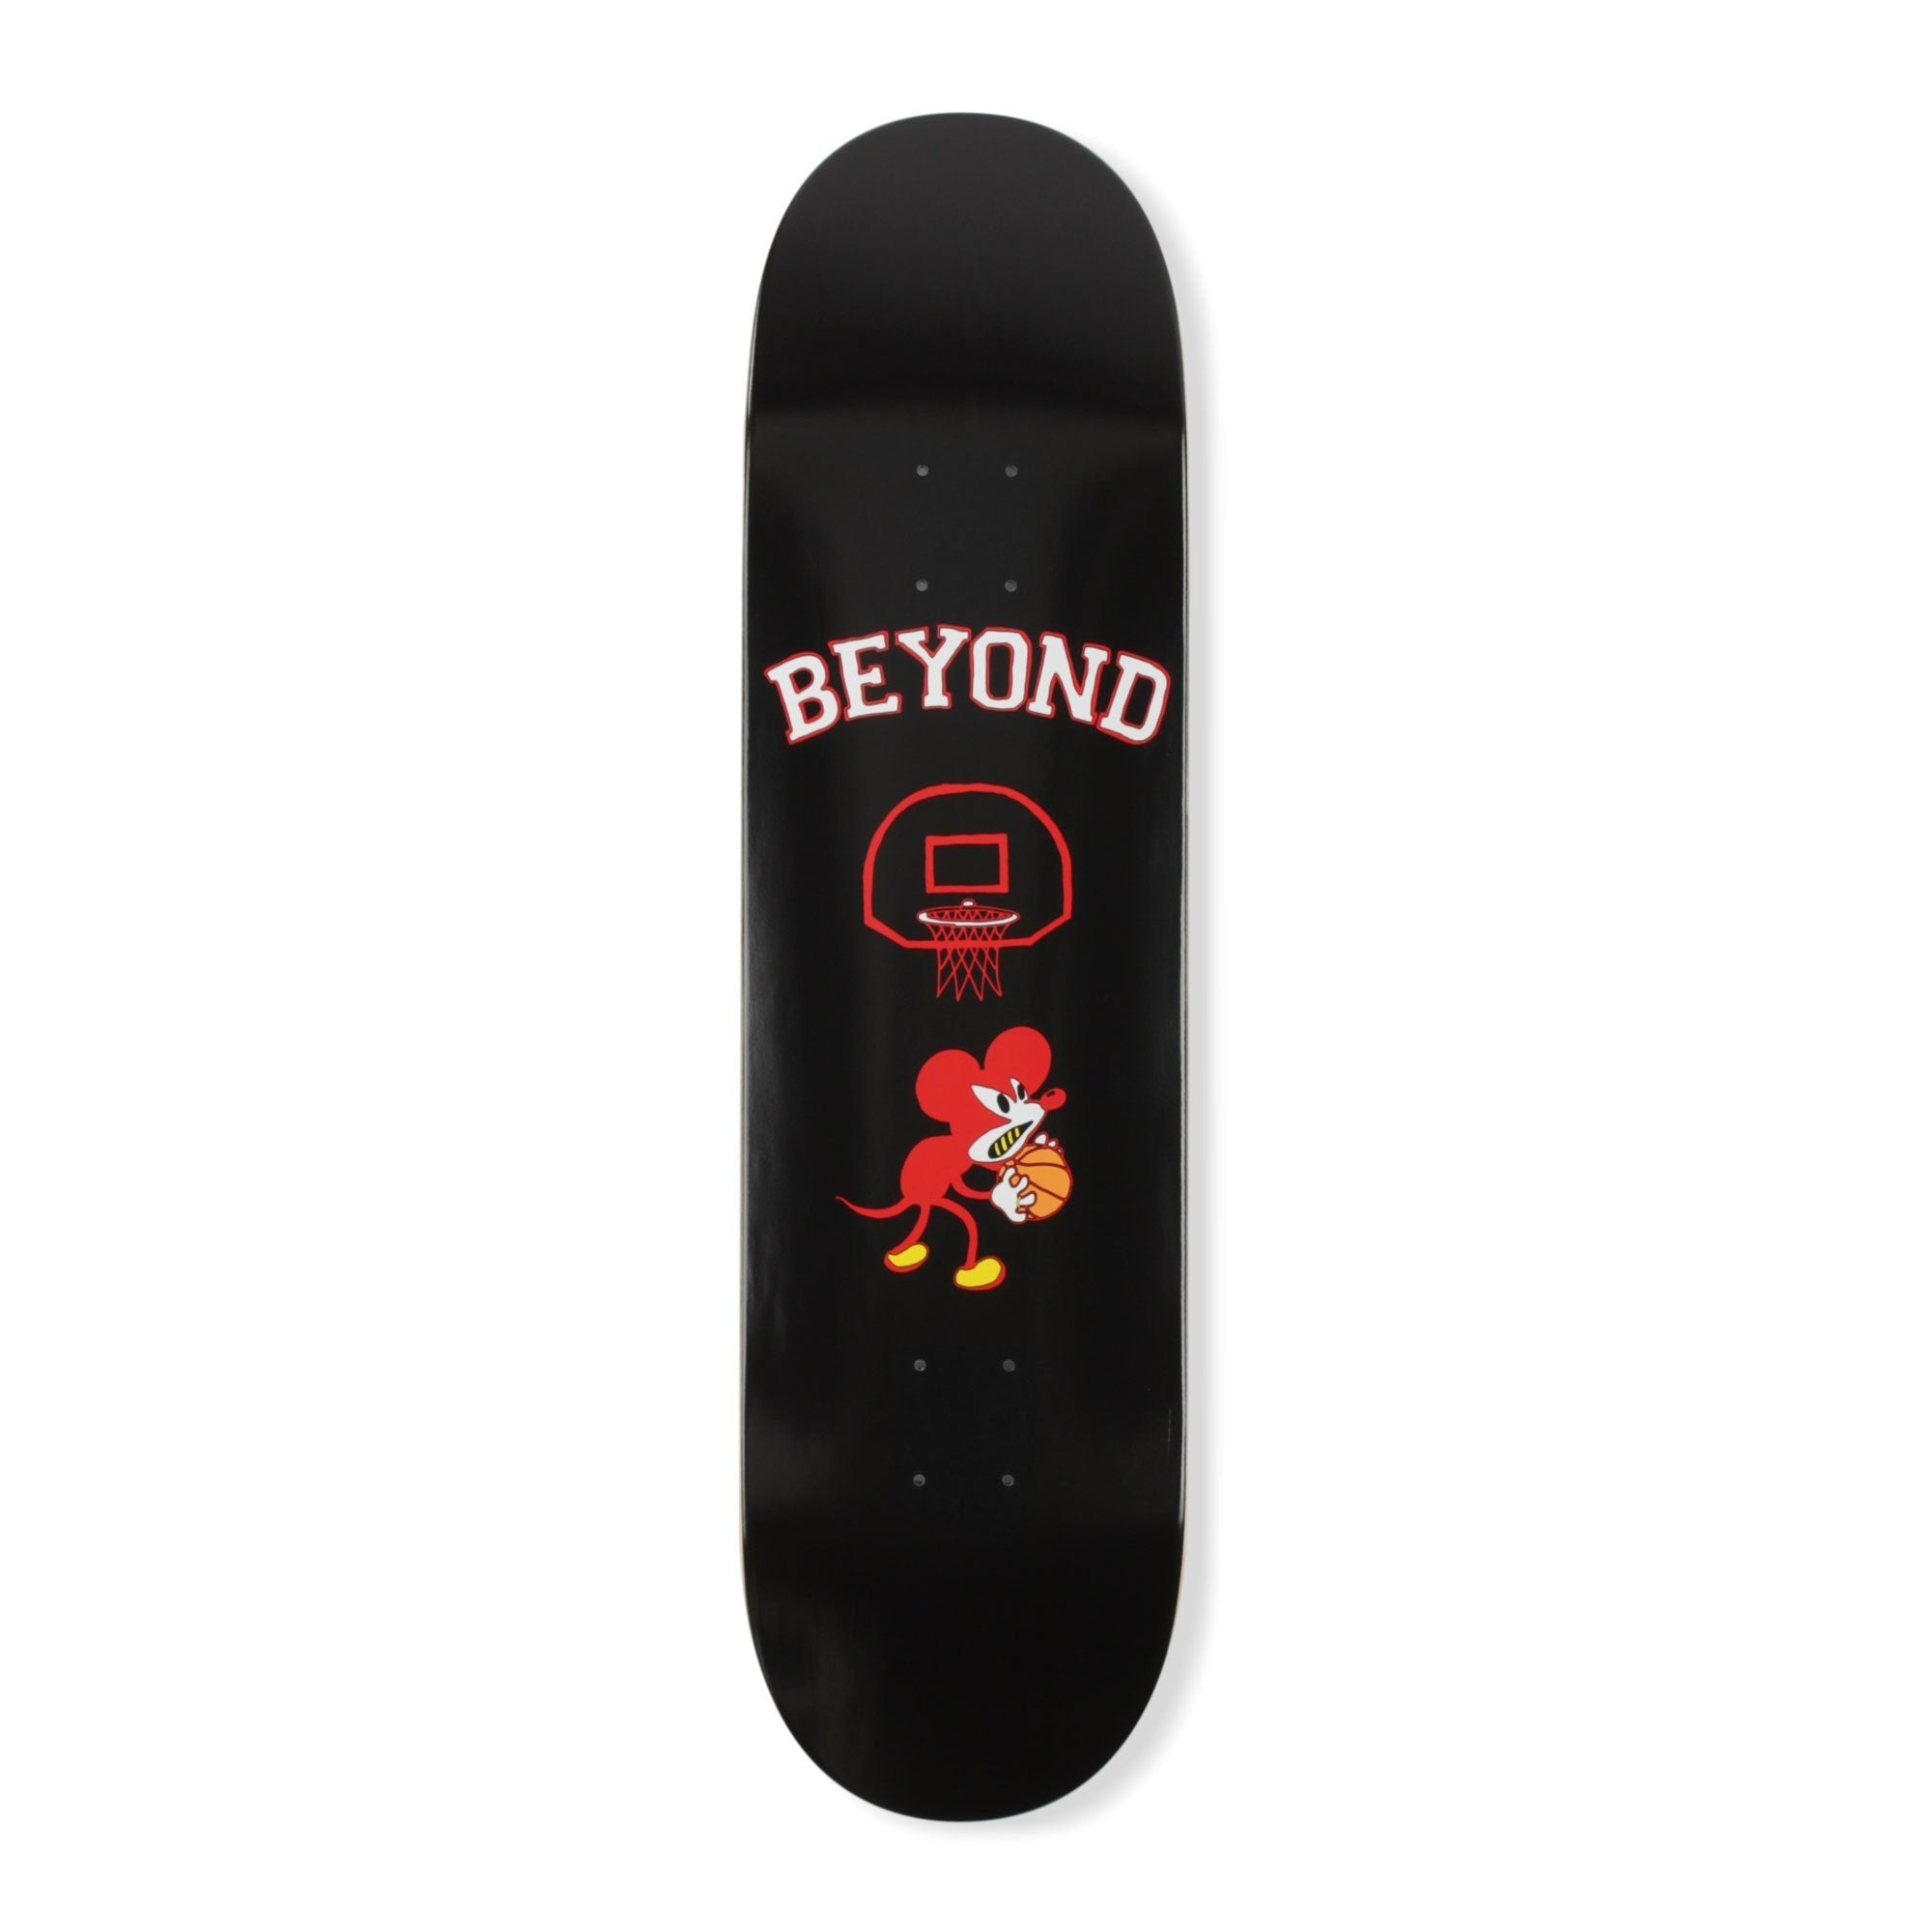 Beyond Rat Ball Deck Product Photo #1